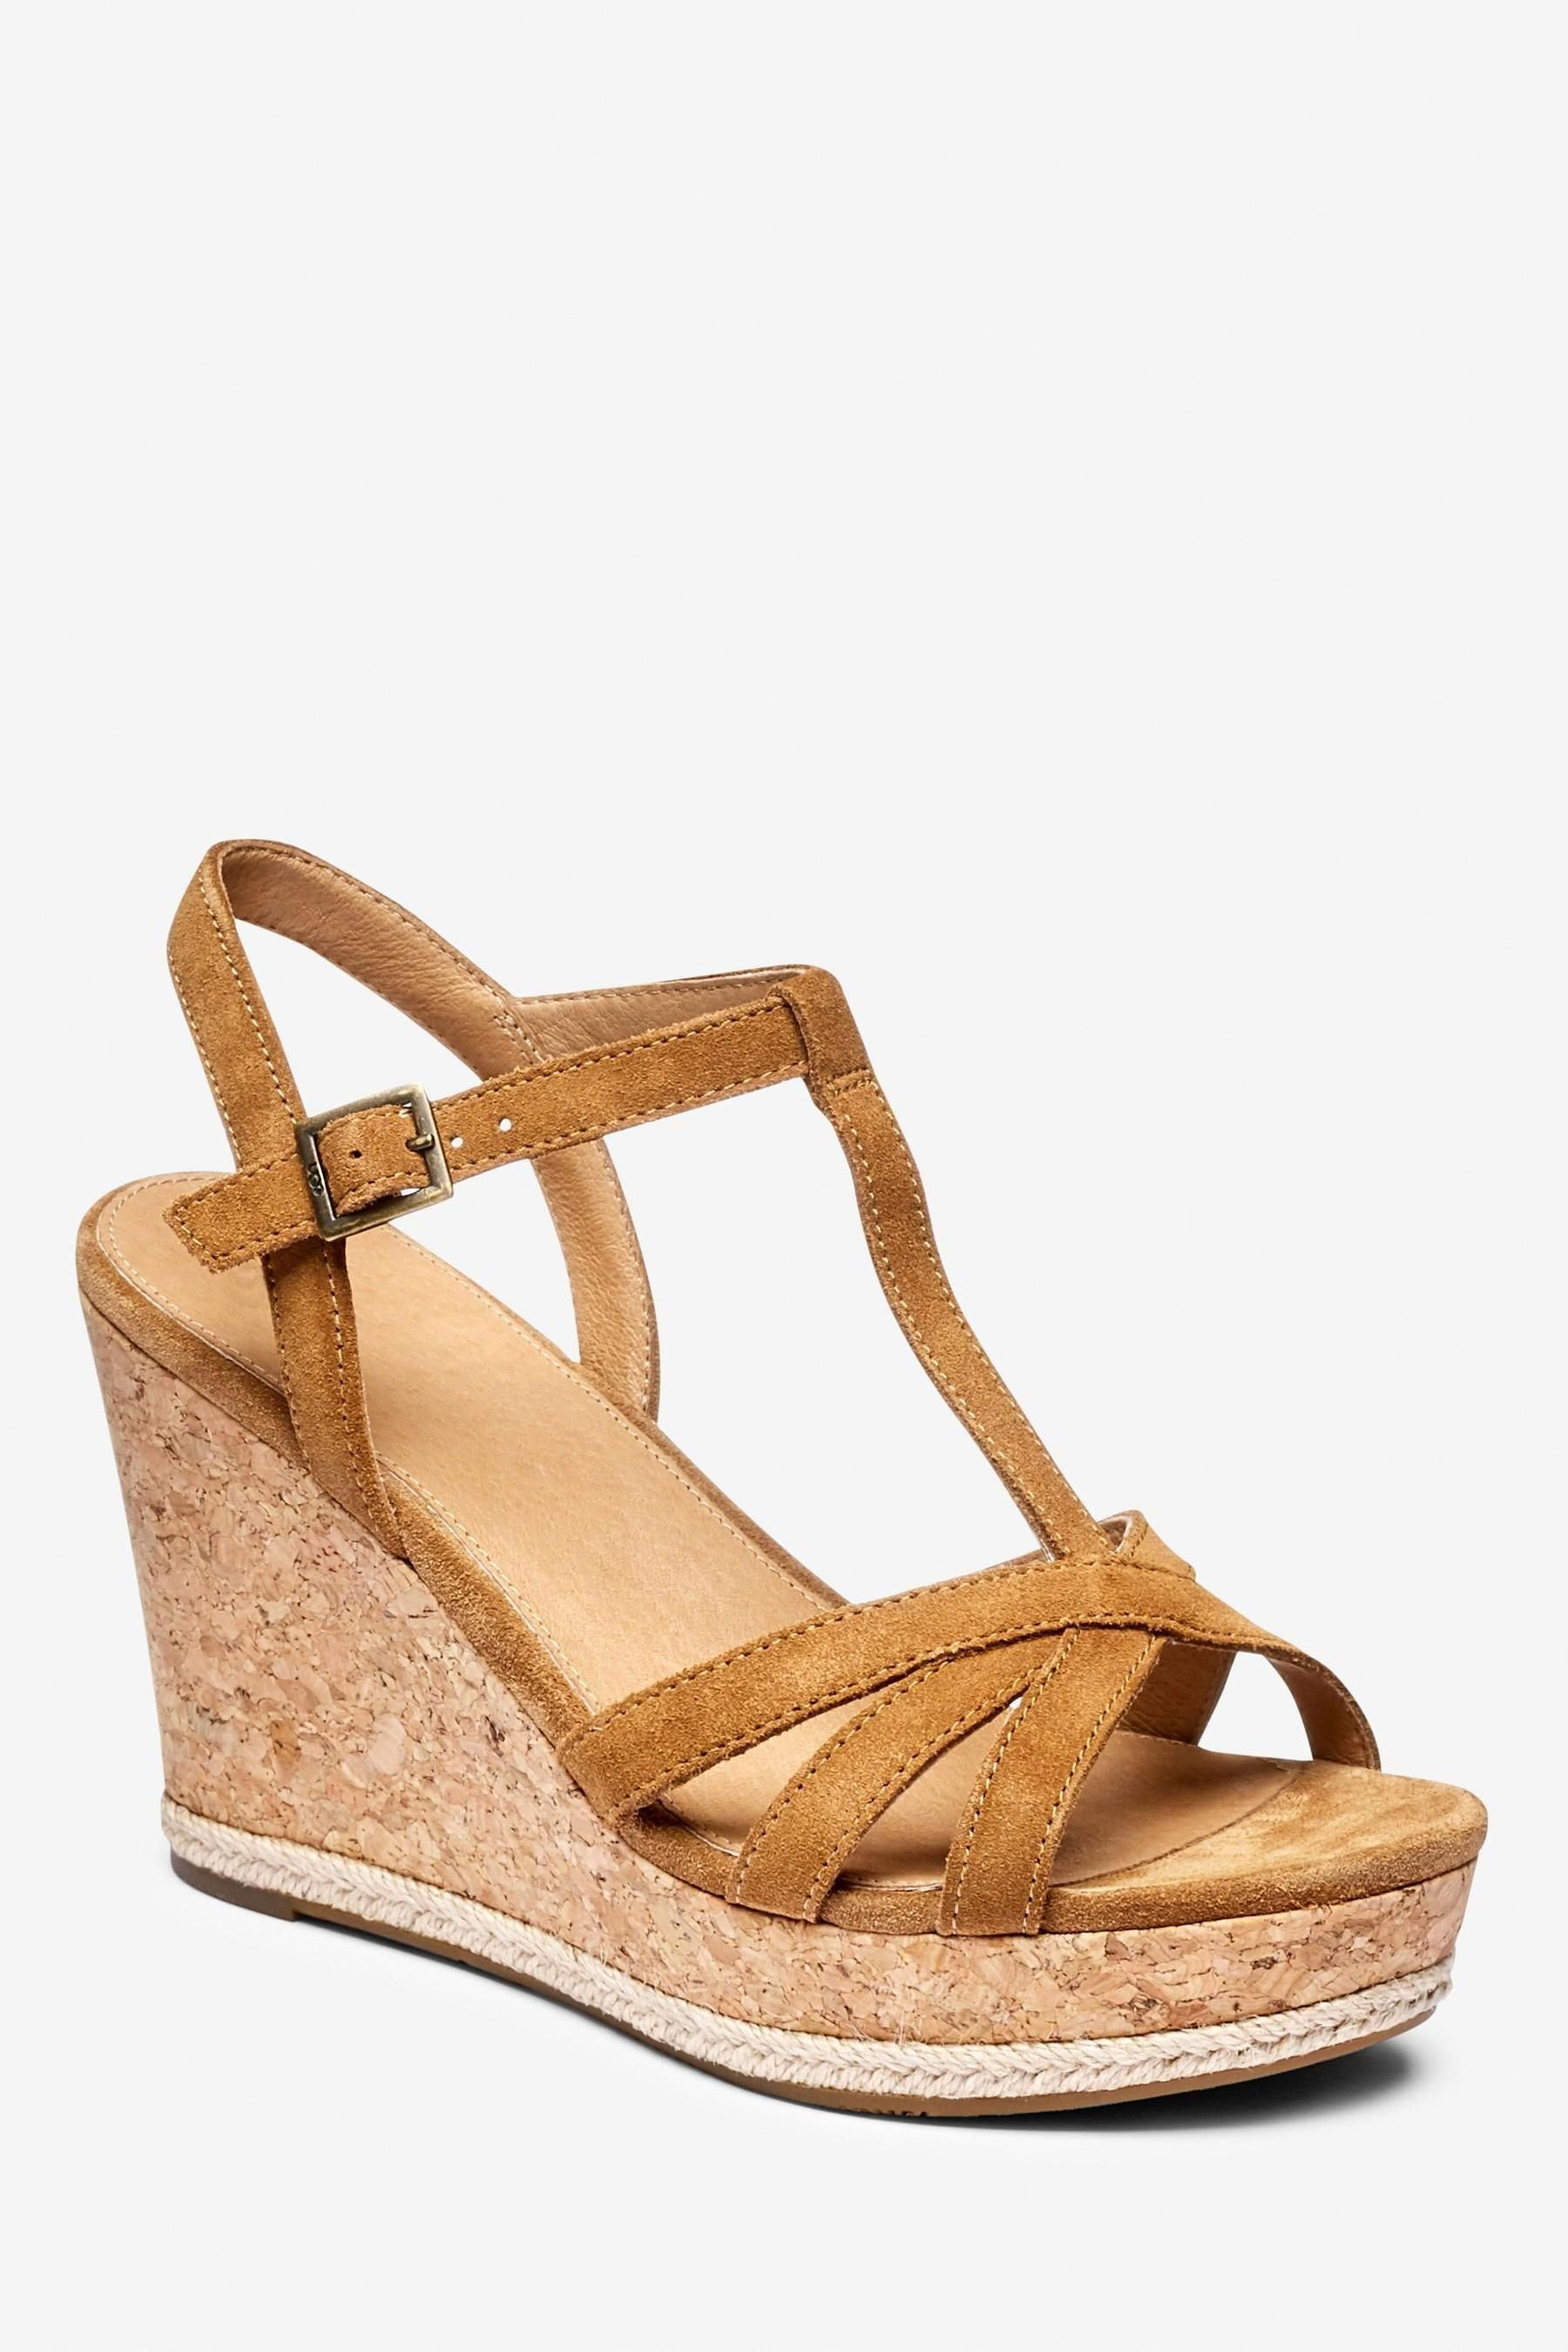 Strappy wedges, Strappy sandals wedge